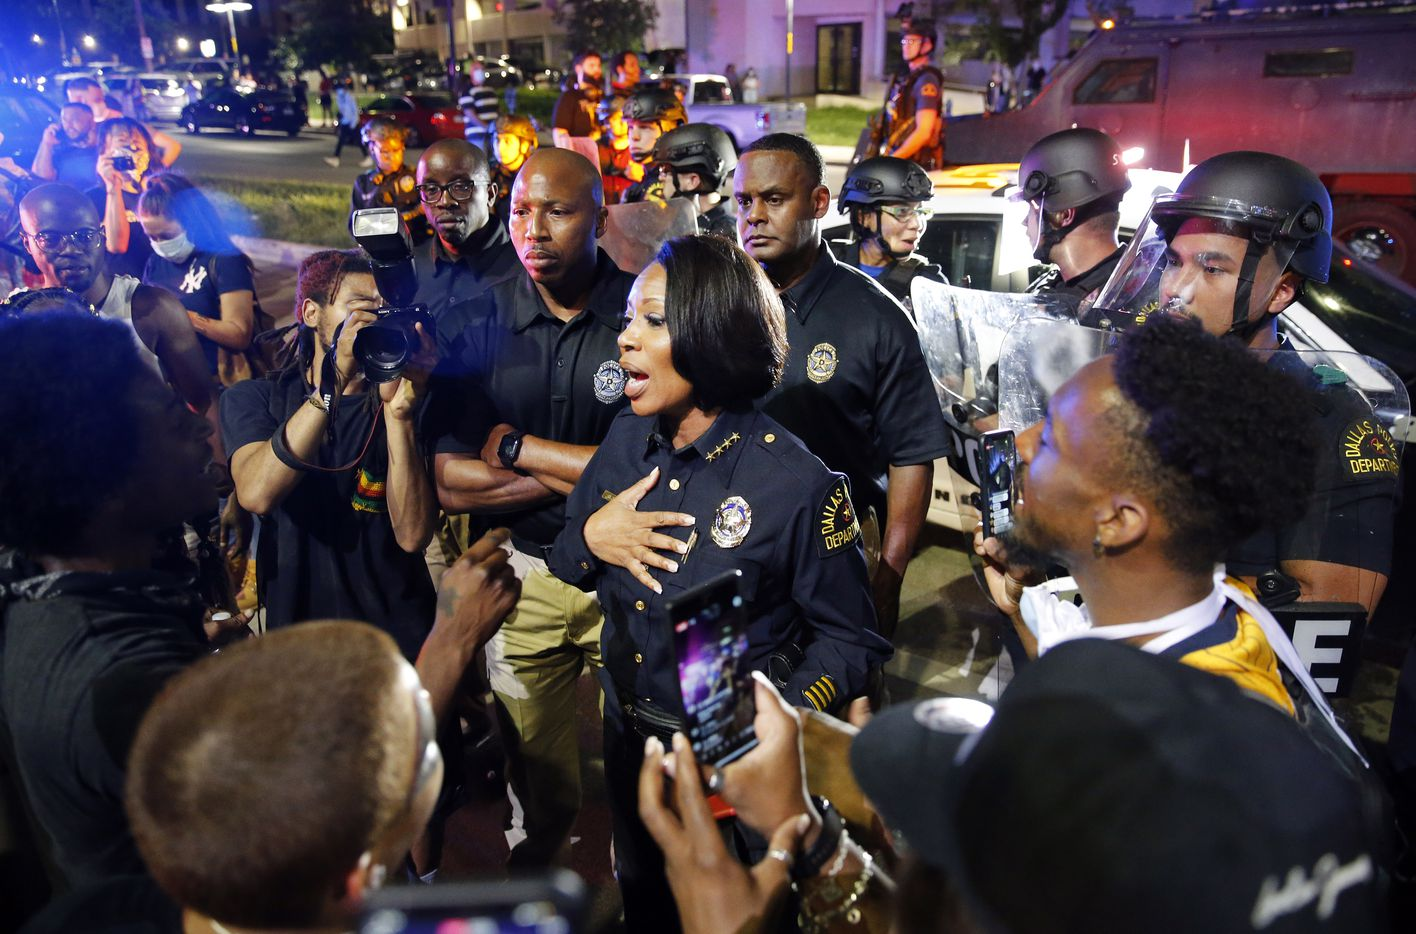 Dallas Police Chief Reneé Hall confronts protestors at Young St. and S. Griffin St. in downtown Dallas, Friday, May 29, 2020. People were marching in protest of the in-custody death of George Floyd when they confronted Dallas Police tactical officers and tear gas was fired.